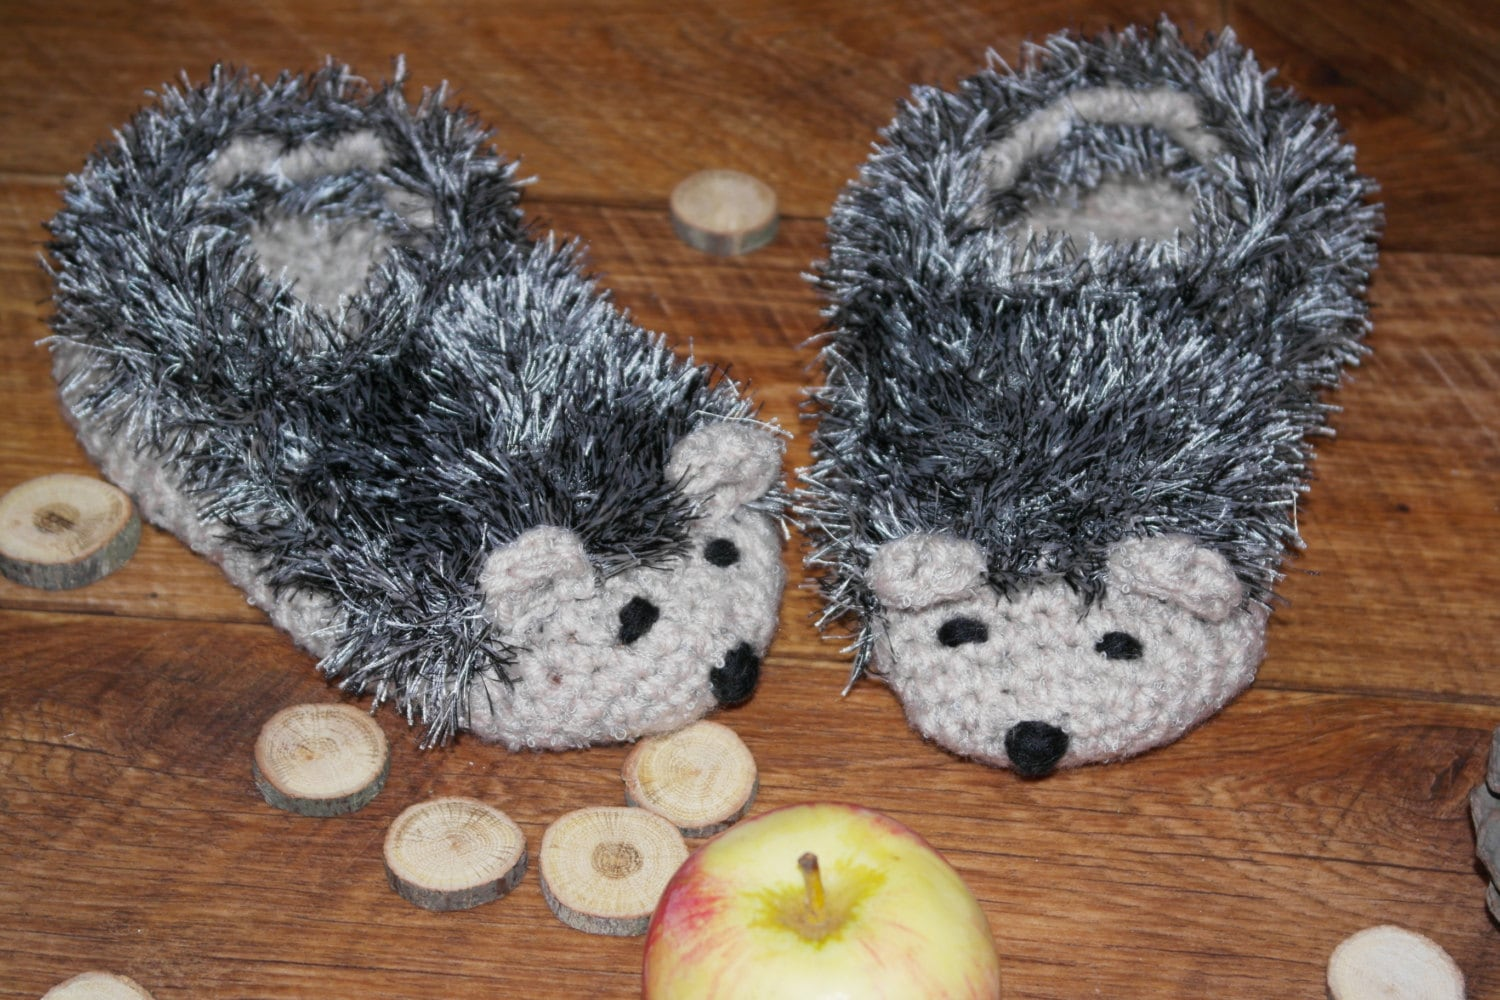 Hedgehog Slippers Knitting Pattern : Hand Knit gray Hedgehog Slippers Shoes Booties for women and